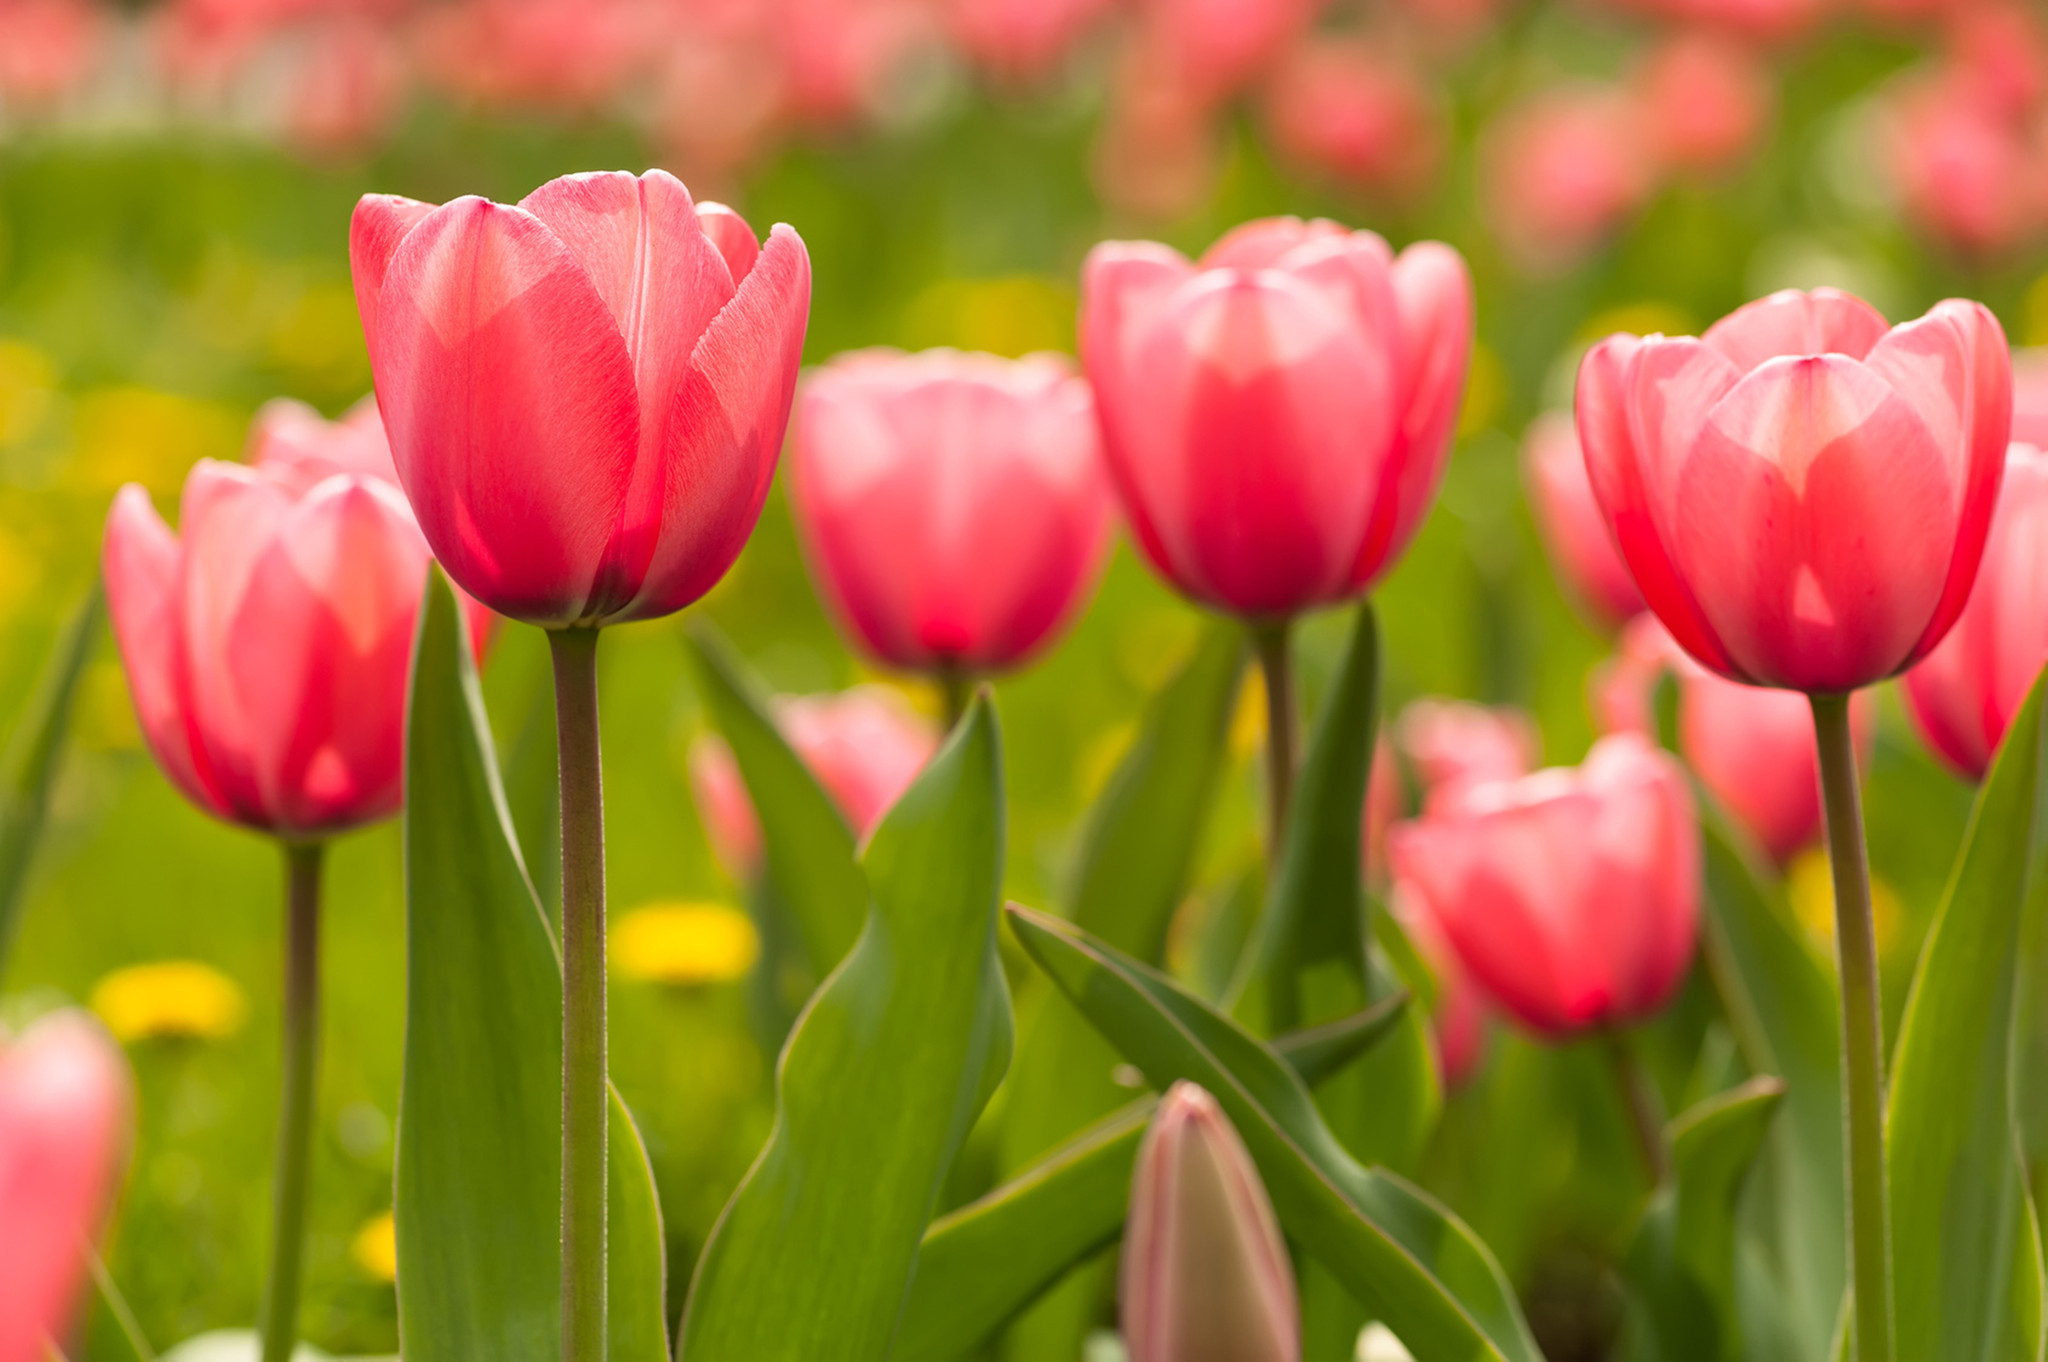 If You Want Tulips To Return, Here Are Some Tips